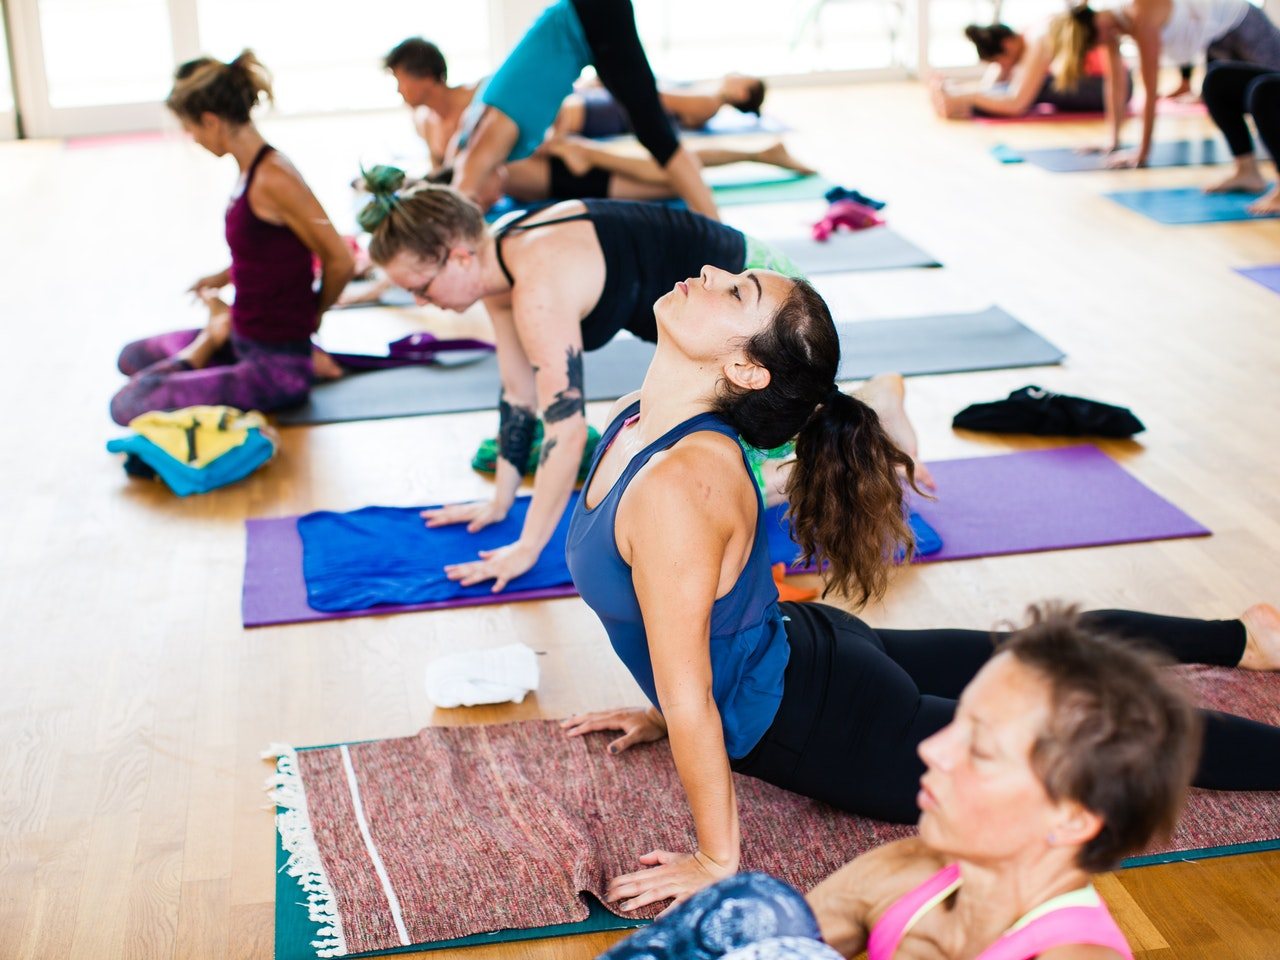 Yoga retreat: 5 ideas for a vacation that strengthens the body and brightens the mind